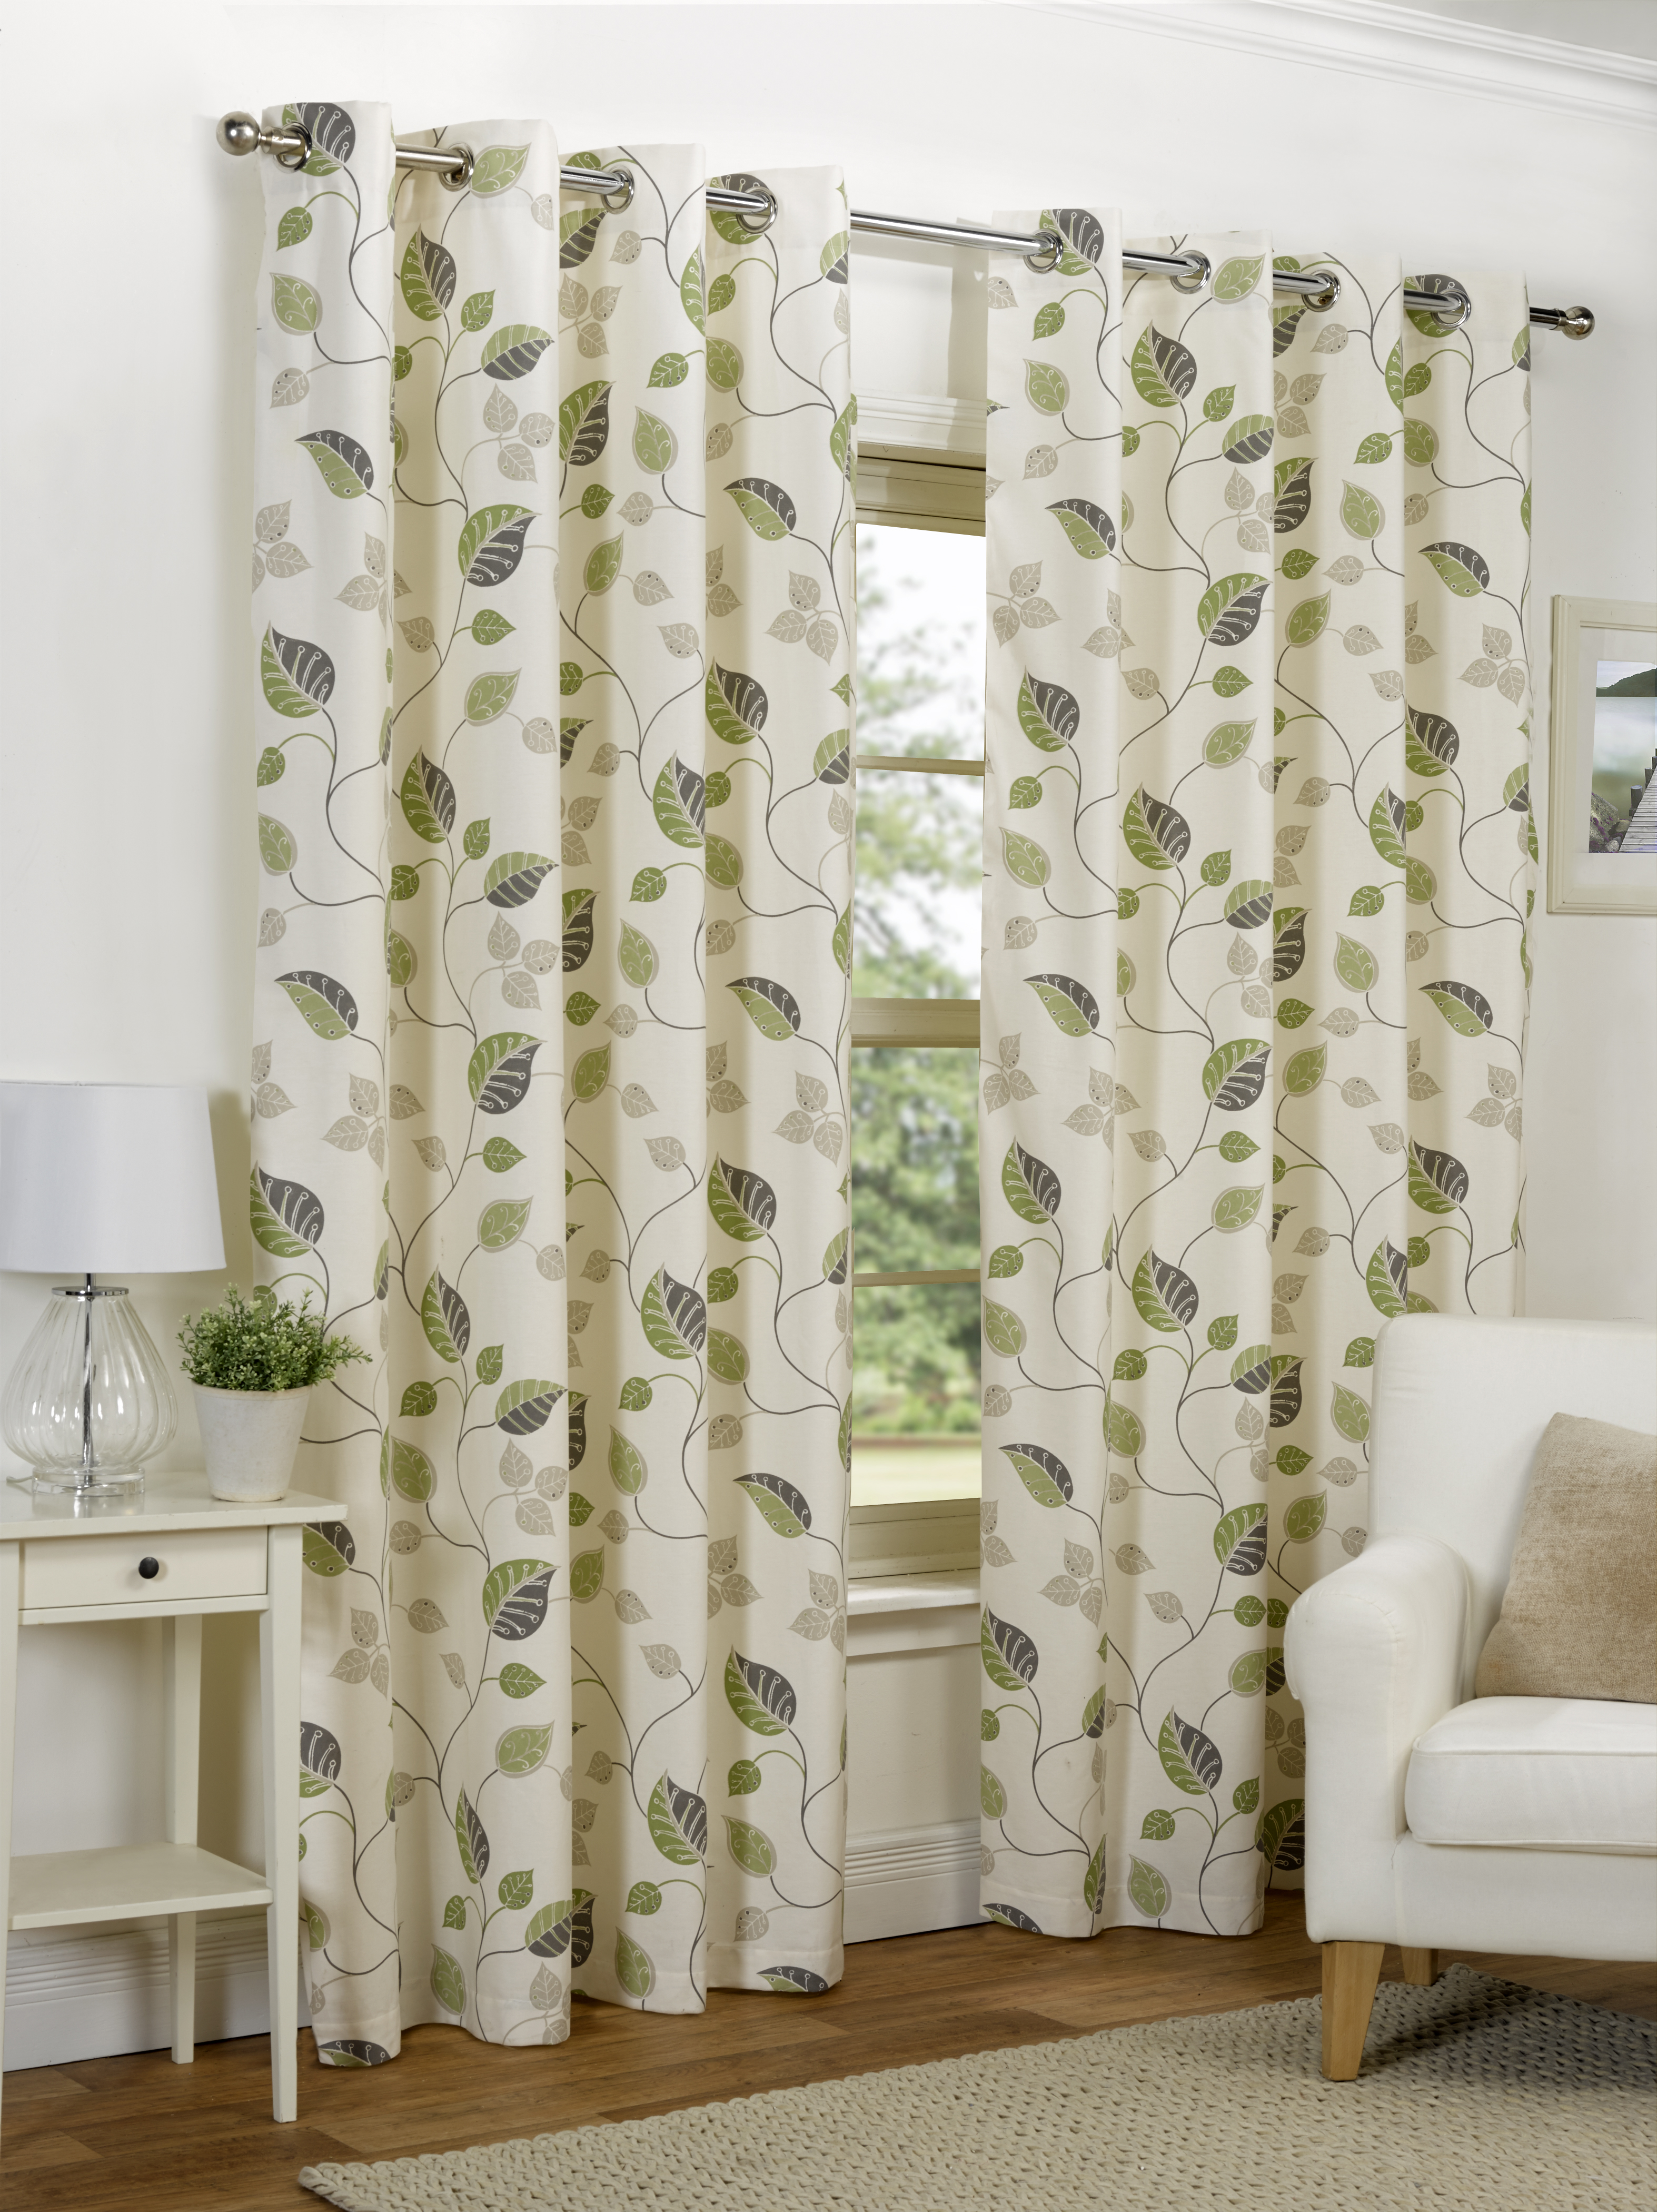 You can completely transform a room (or several) with these contemporary chiffon Oak Leaf Acorn Curtains. Choose from different lengths (and a wide variety of designs) to beautifully fit your decor. You'll find window drapes in elegant patterns and styles, along with images that might add an element of surprise.